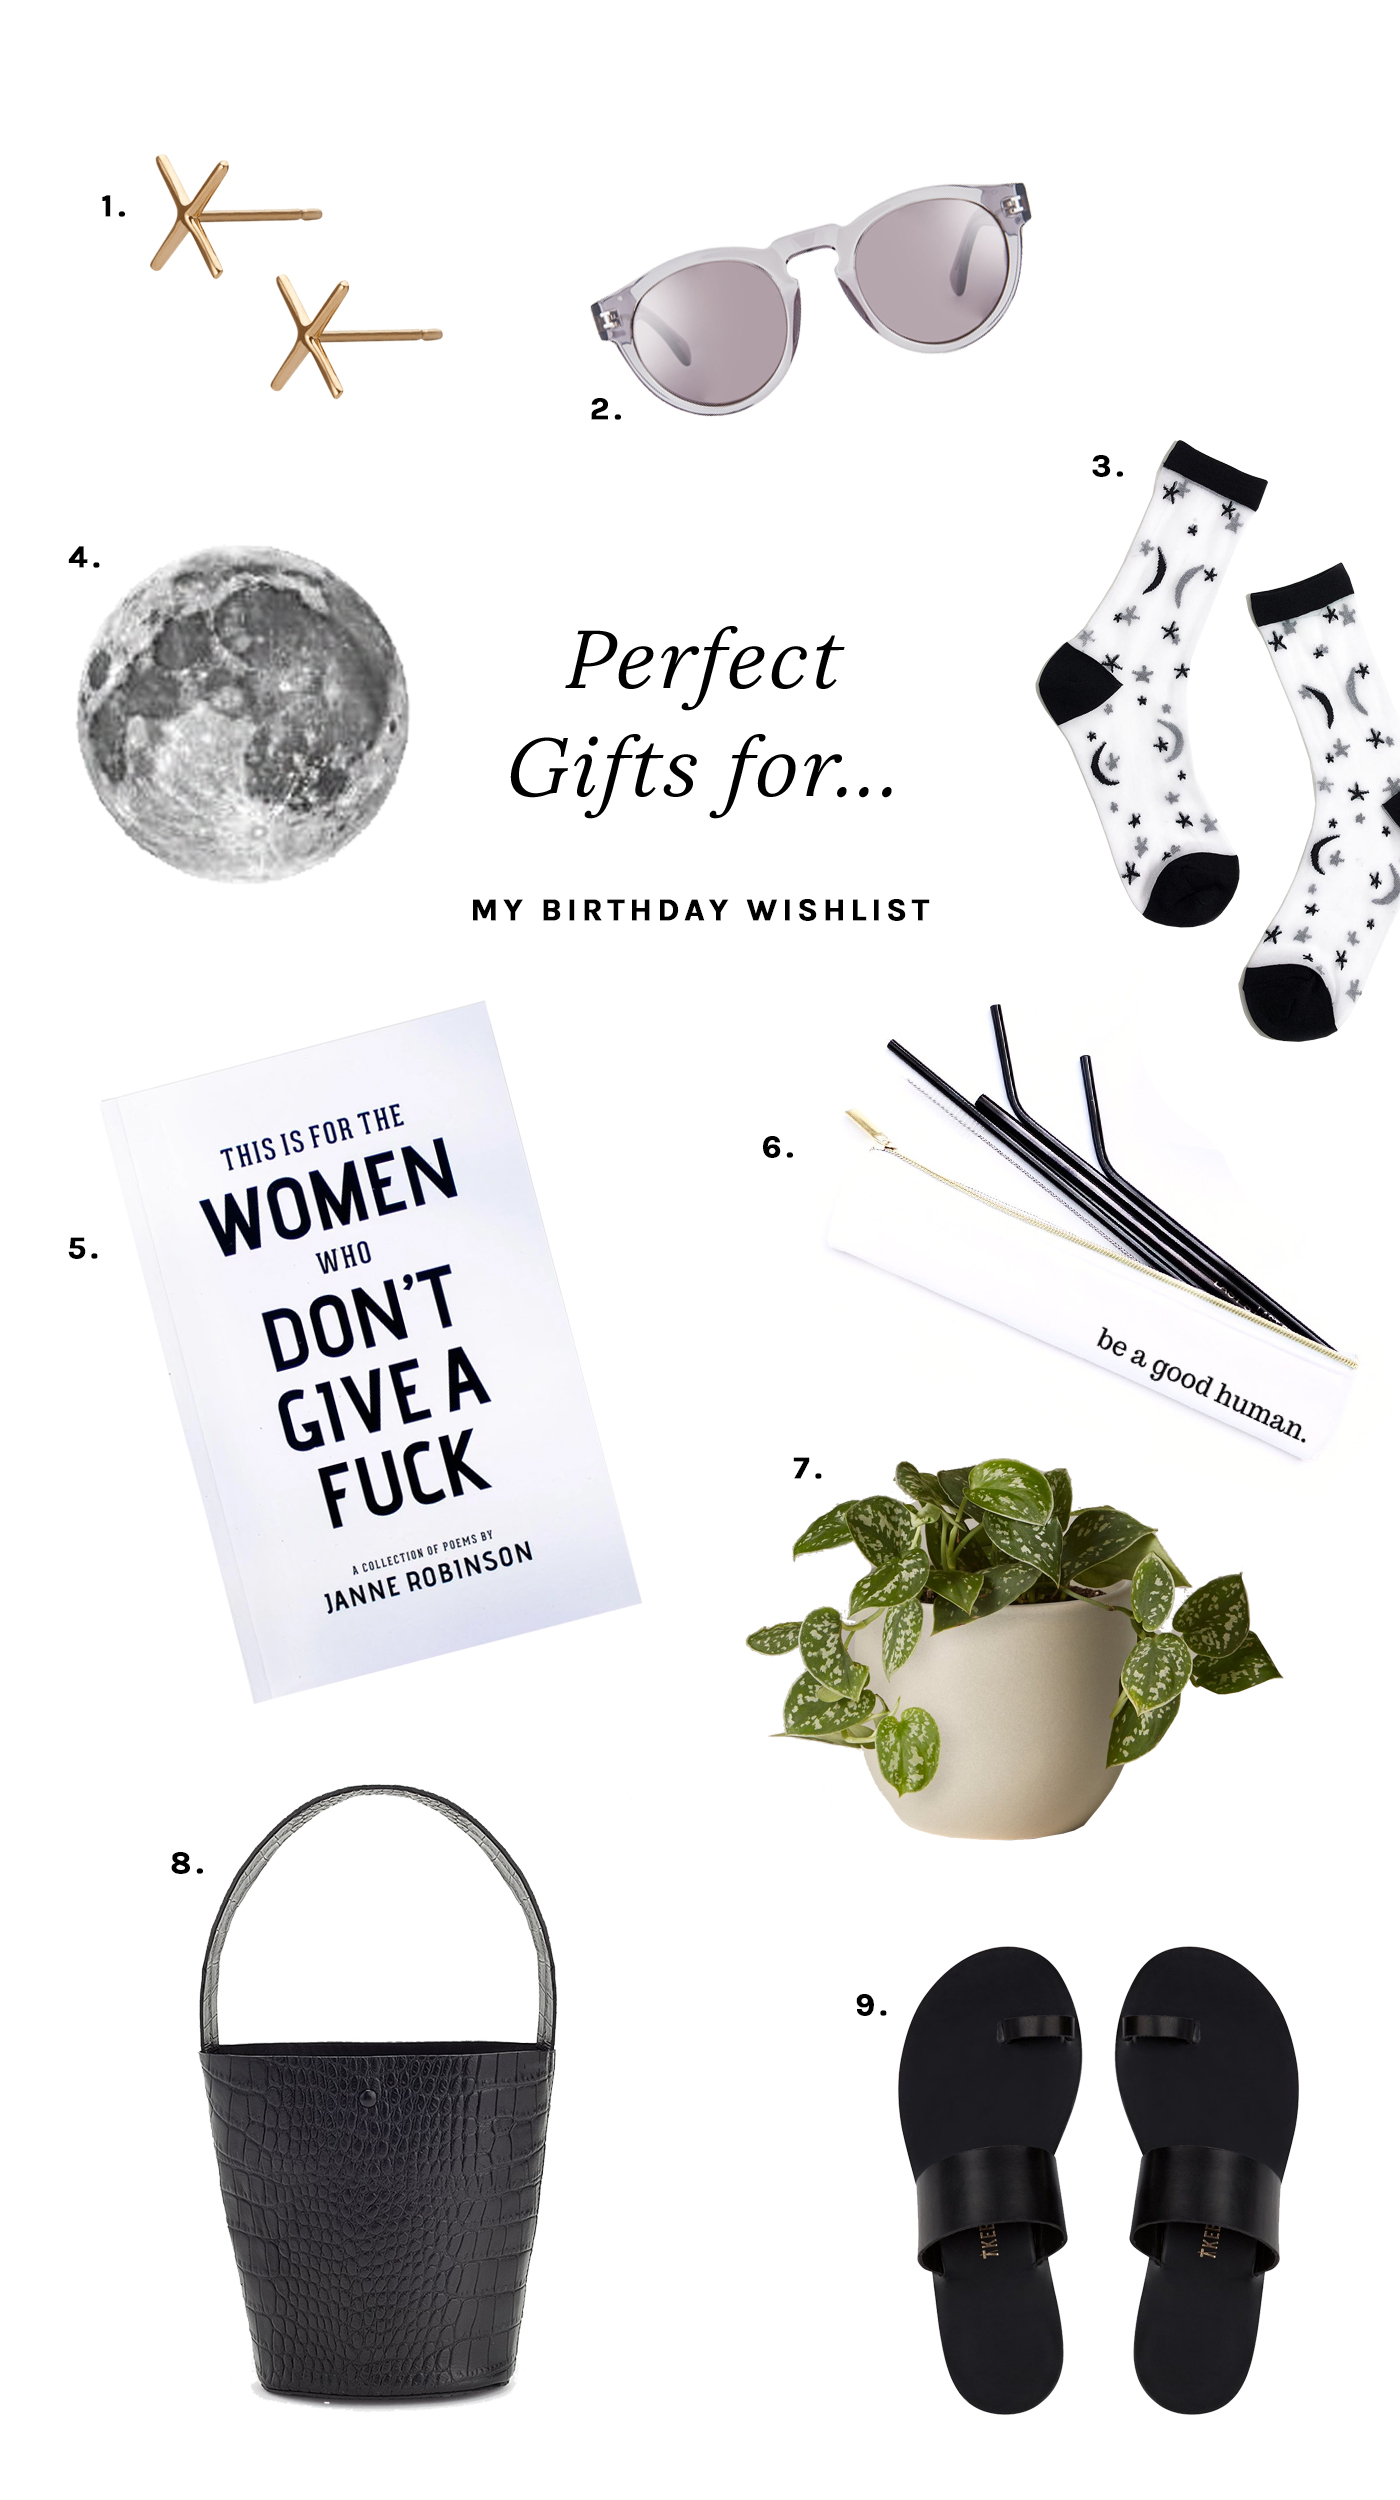 My 2019 birthday wishlist featuring earrings, temporary tattoos, a poetry book, a silver philodendron and sandals.